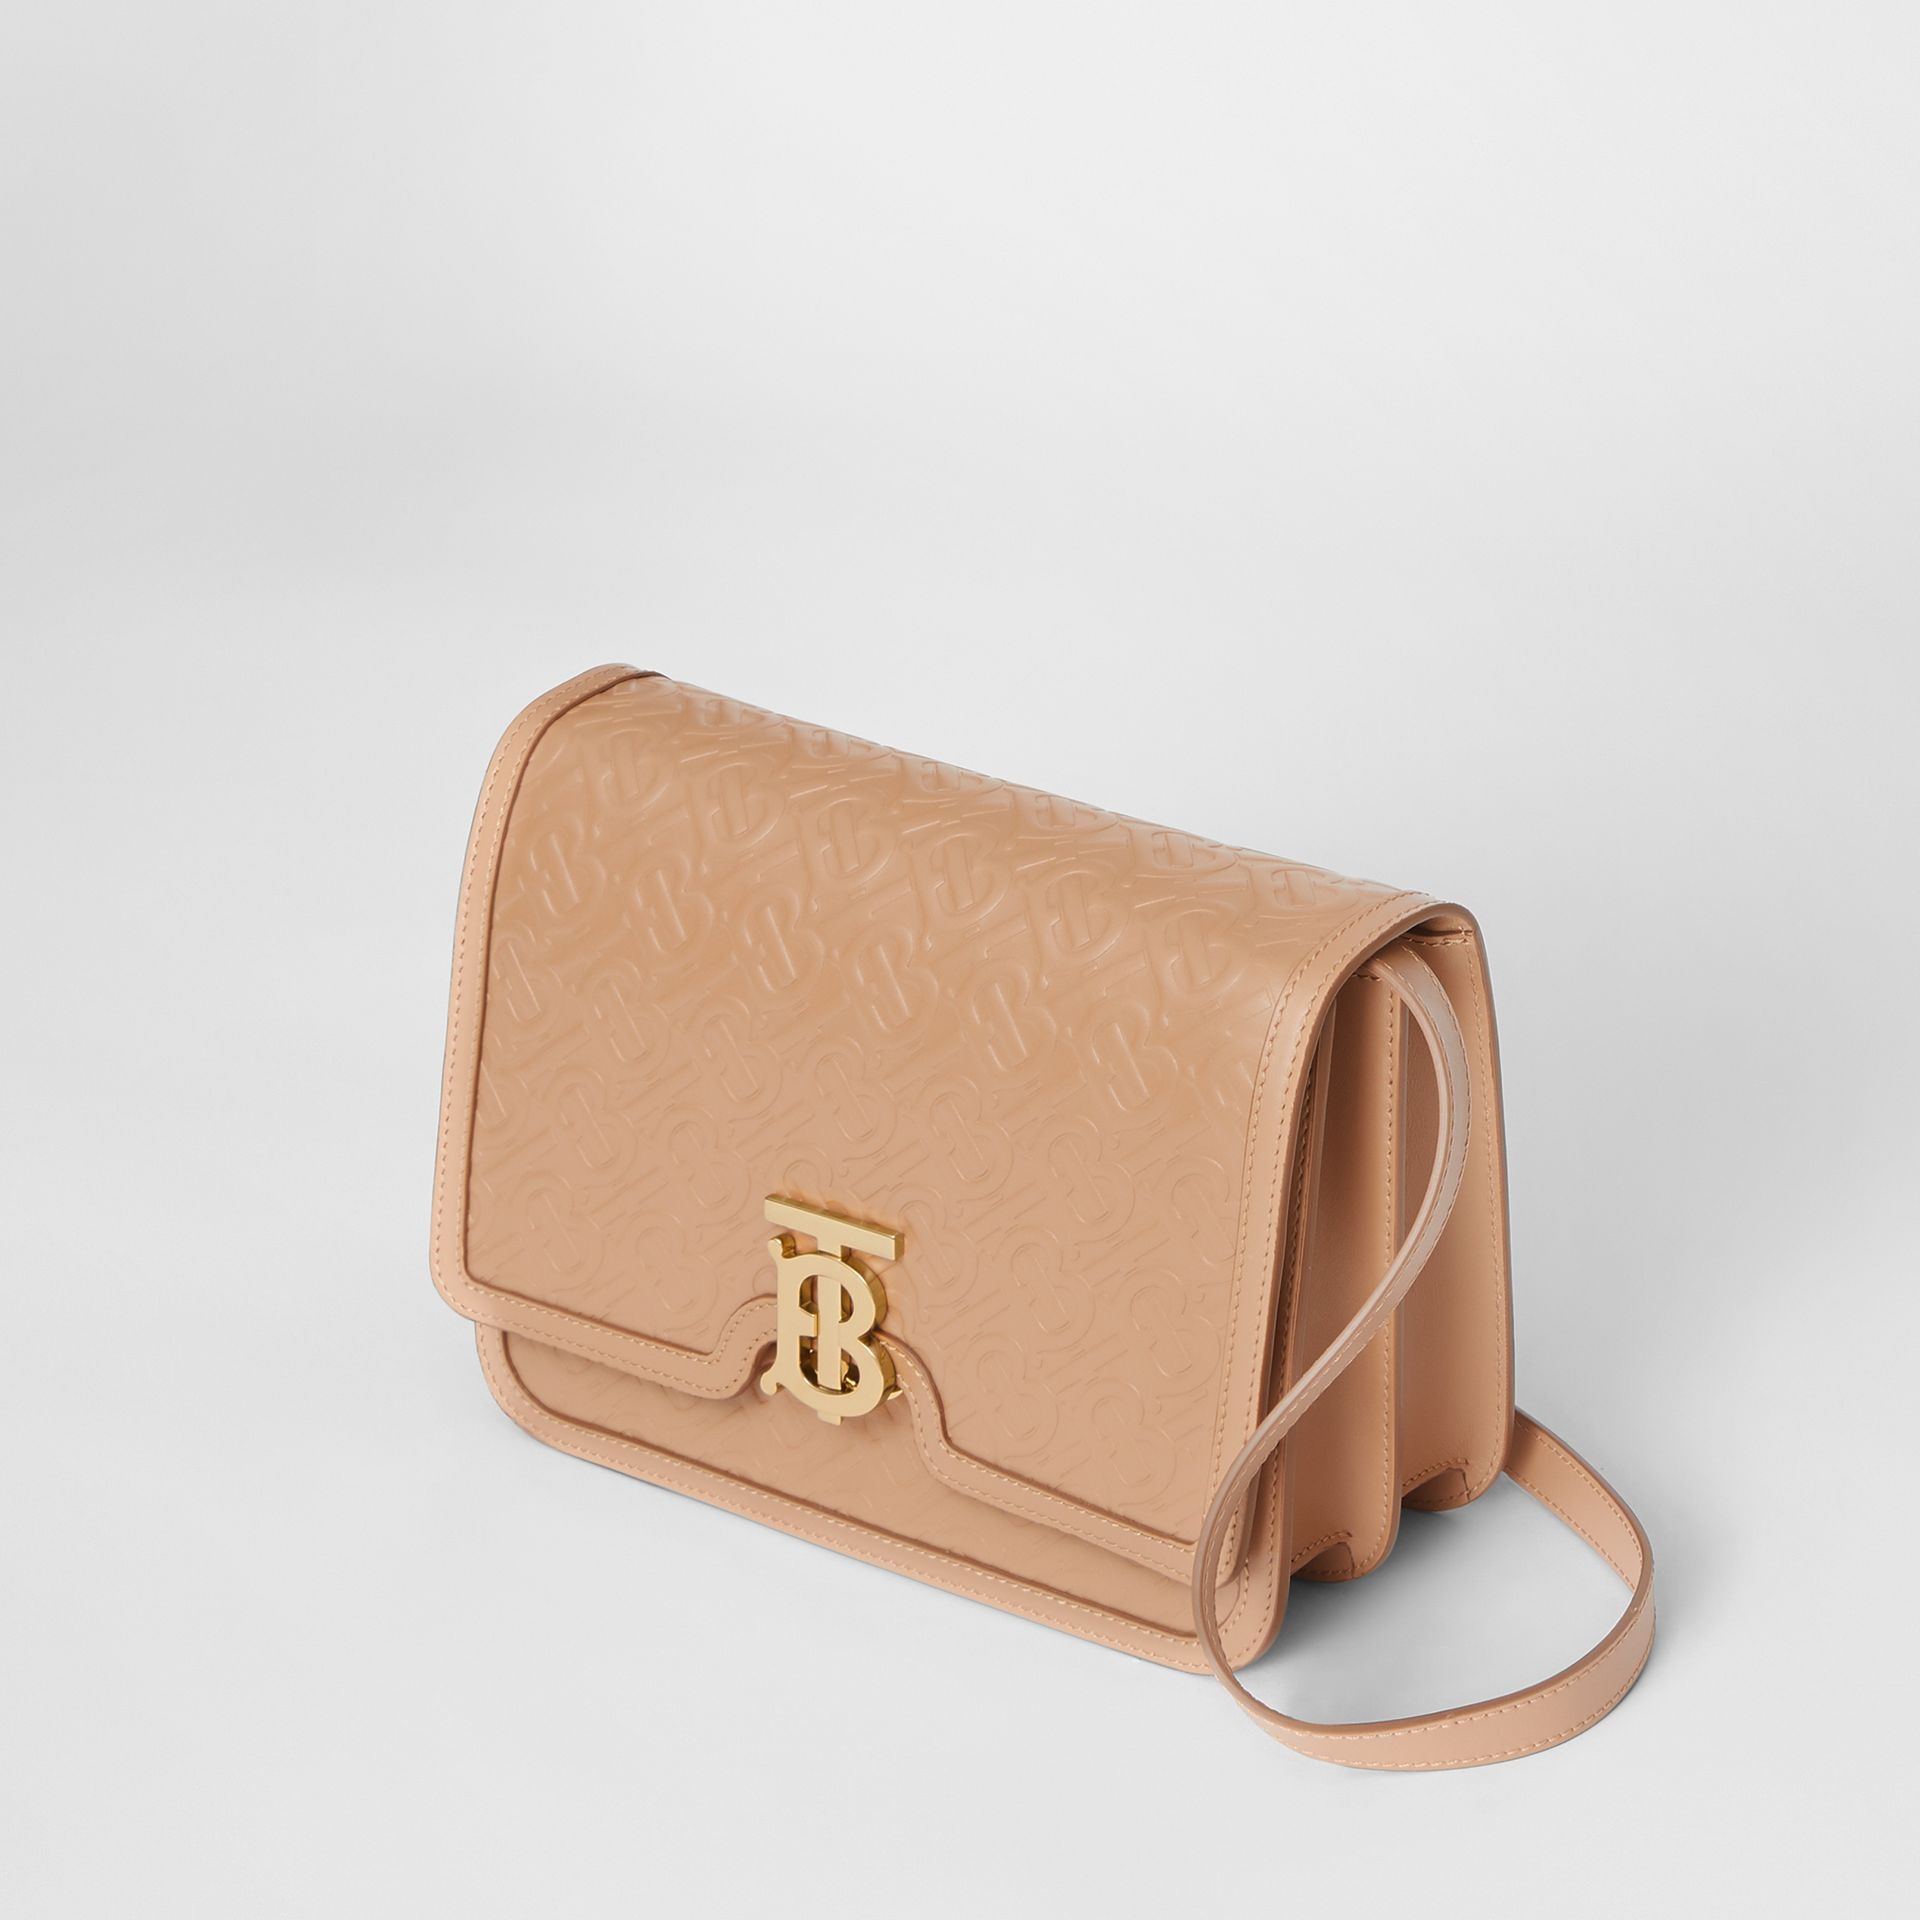 Medium Monogram Leather TB Bag in Light Camel - Women | Burberry Australia - gallery image 3